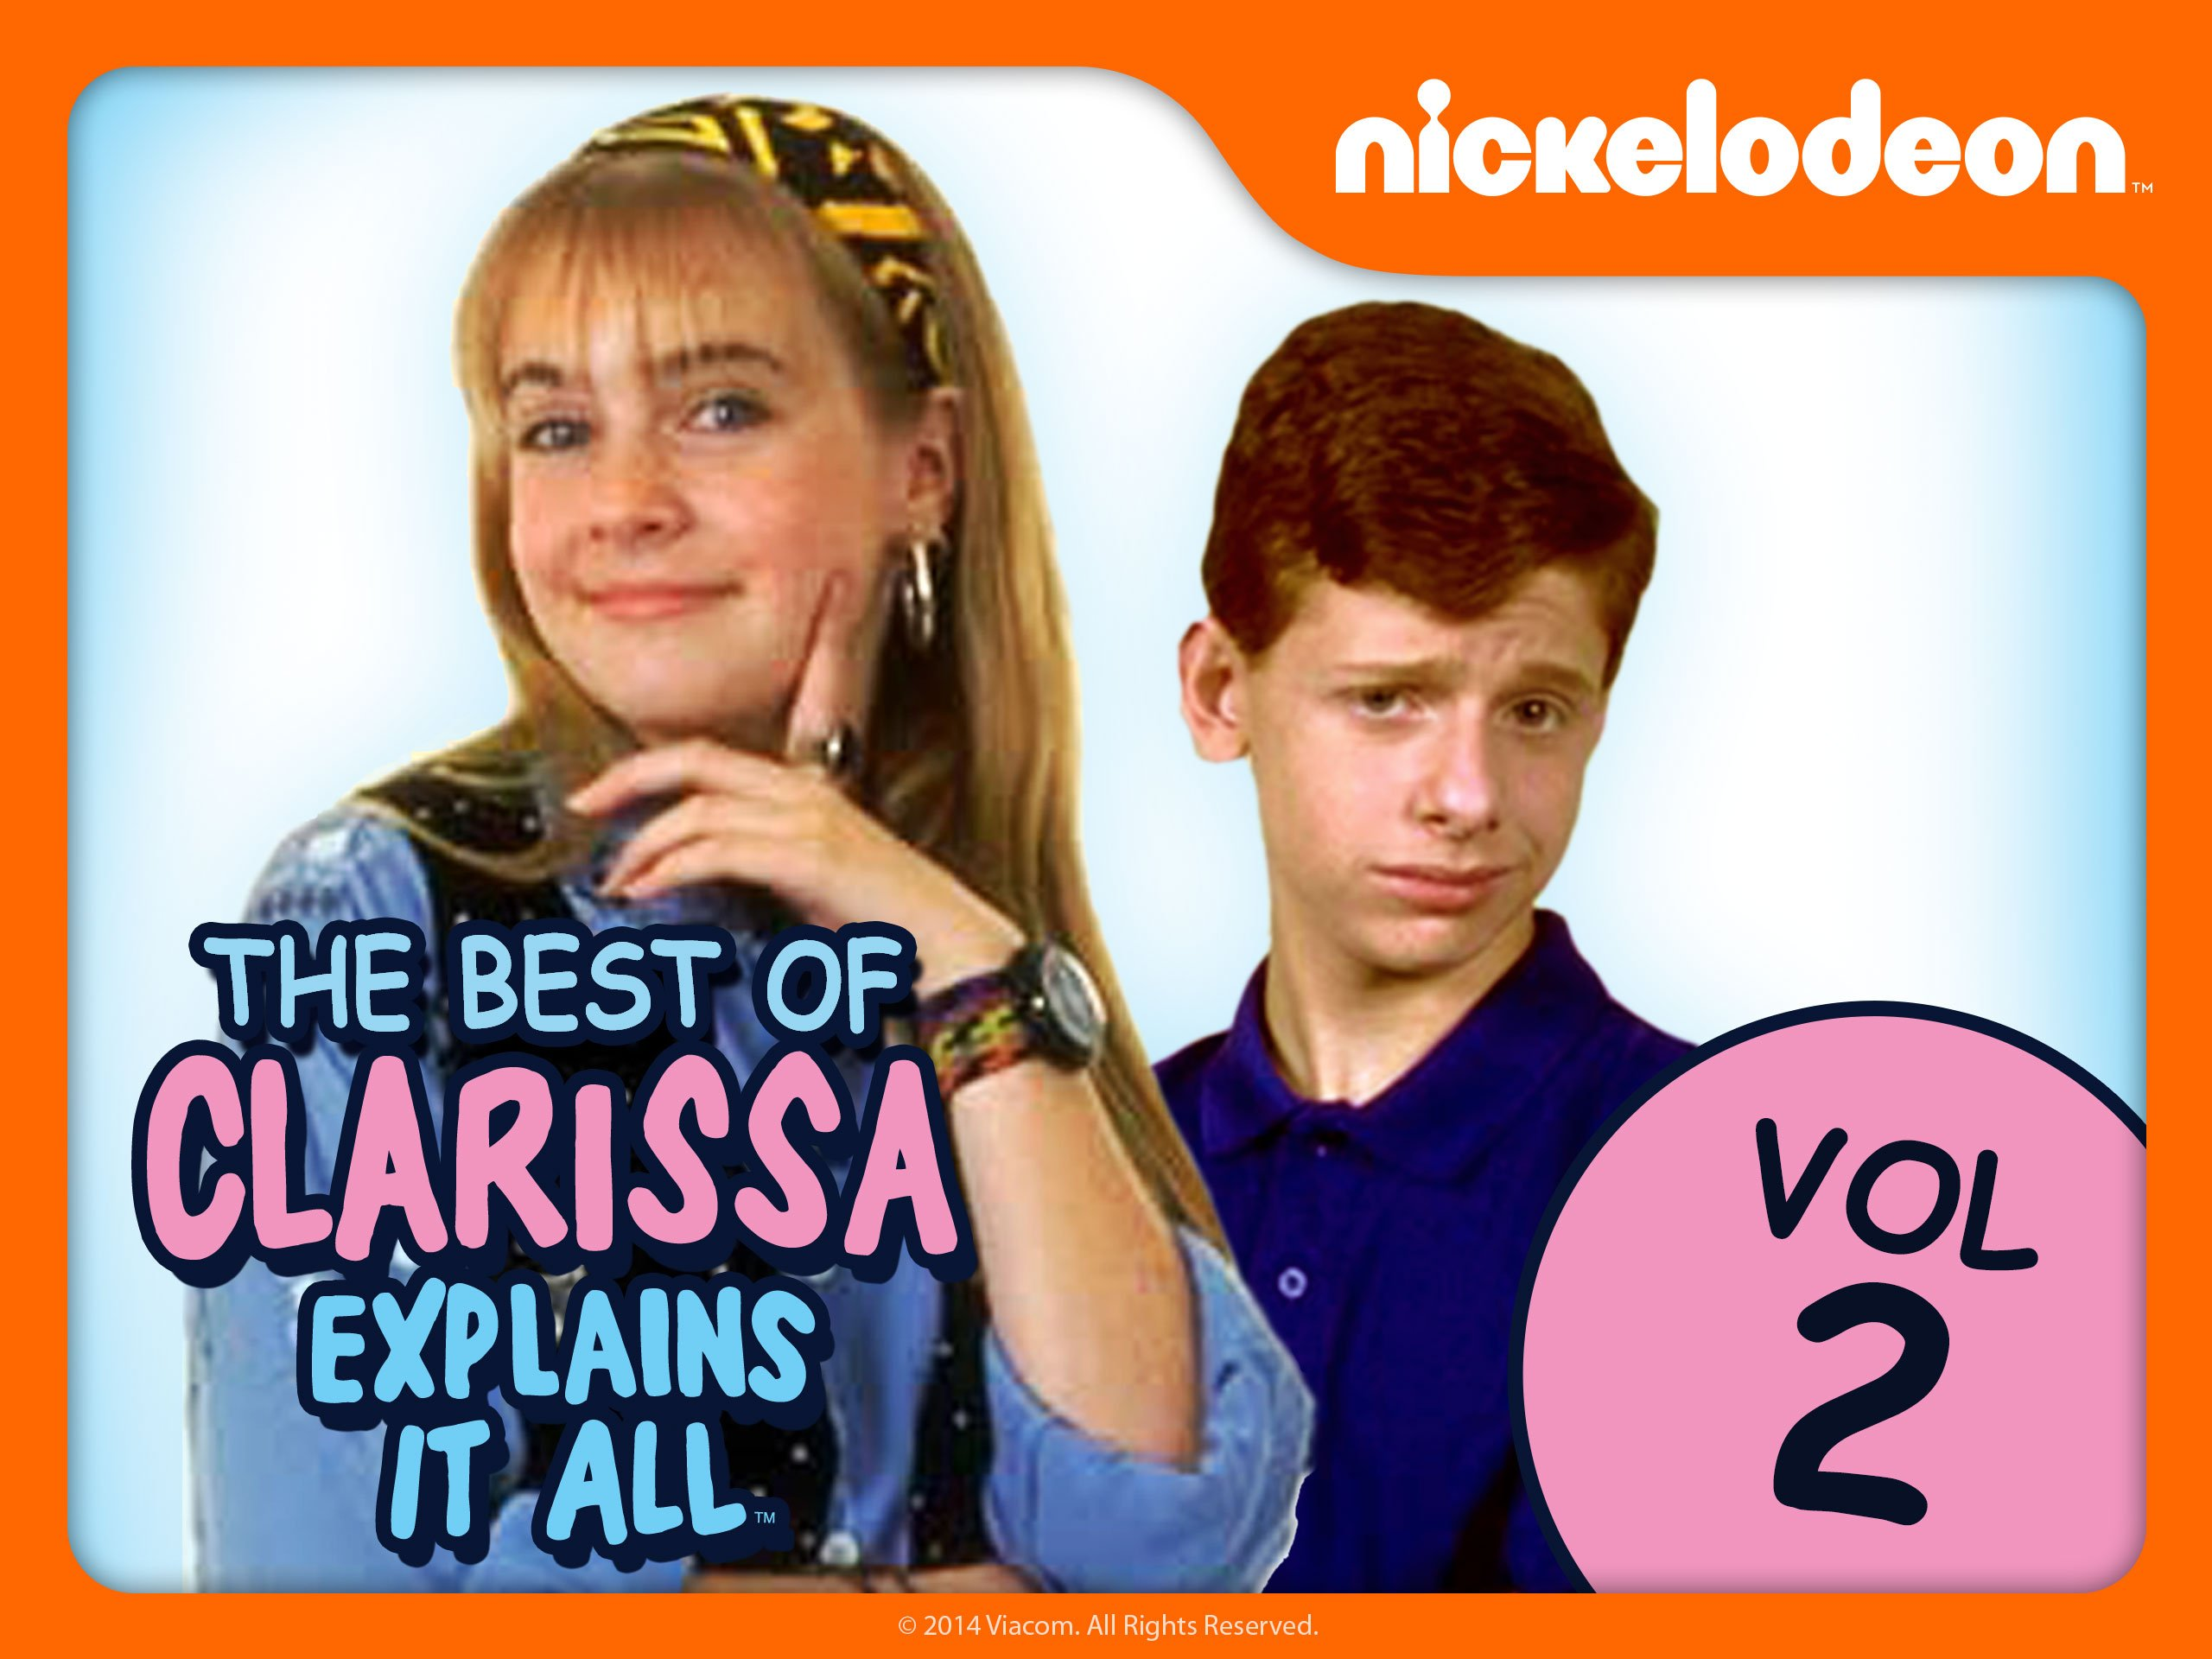 clarissa explains it all full episodes free online